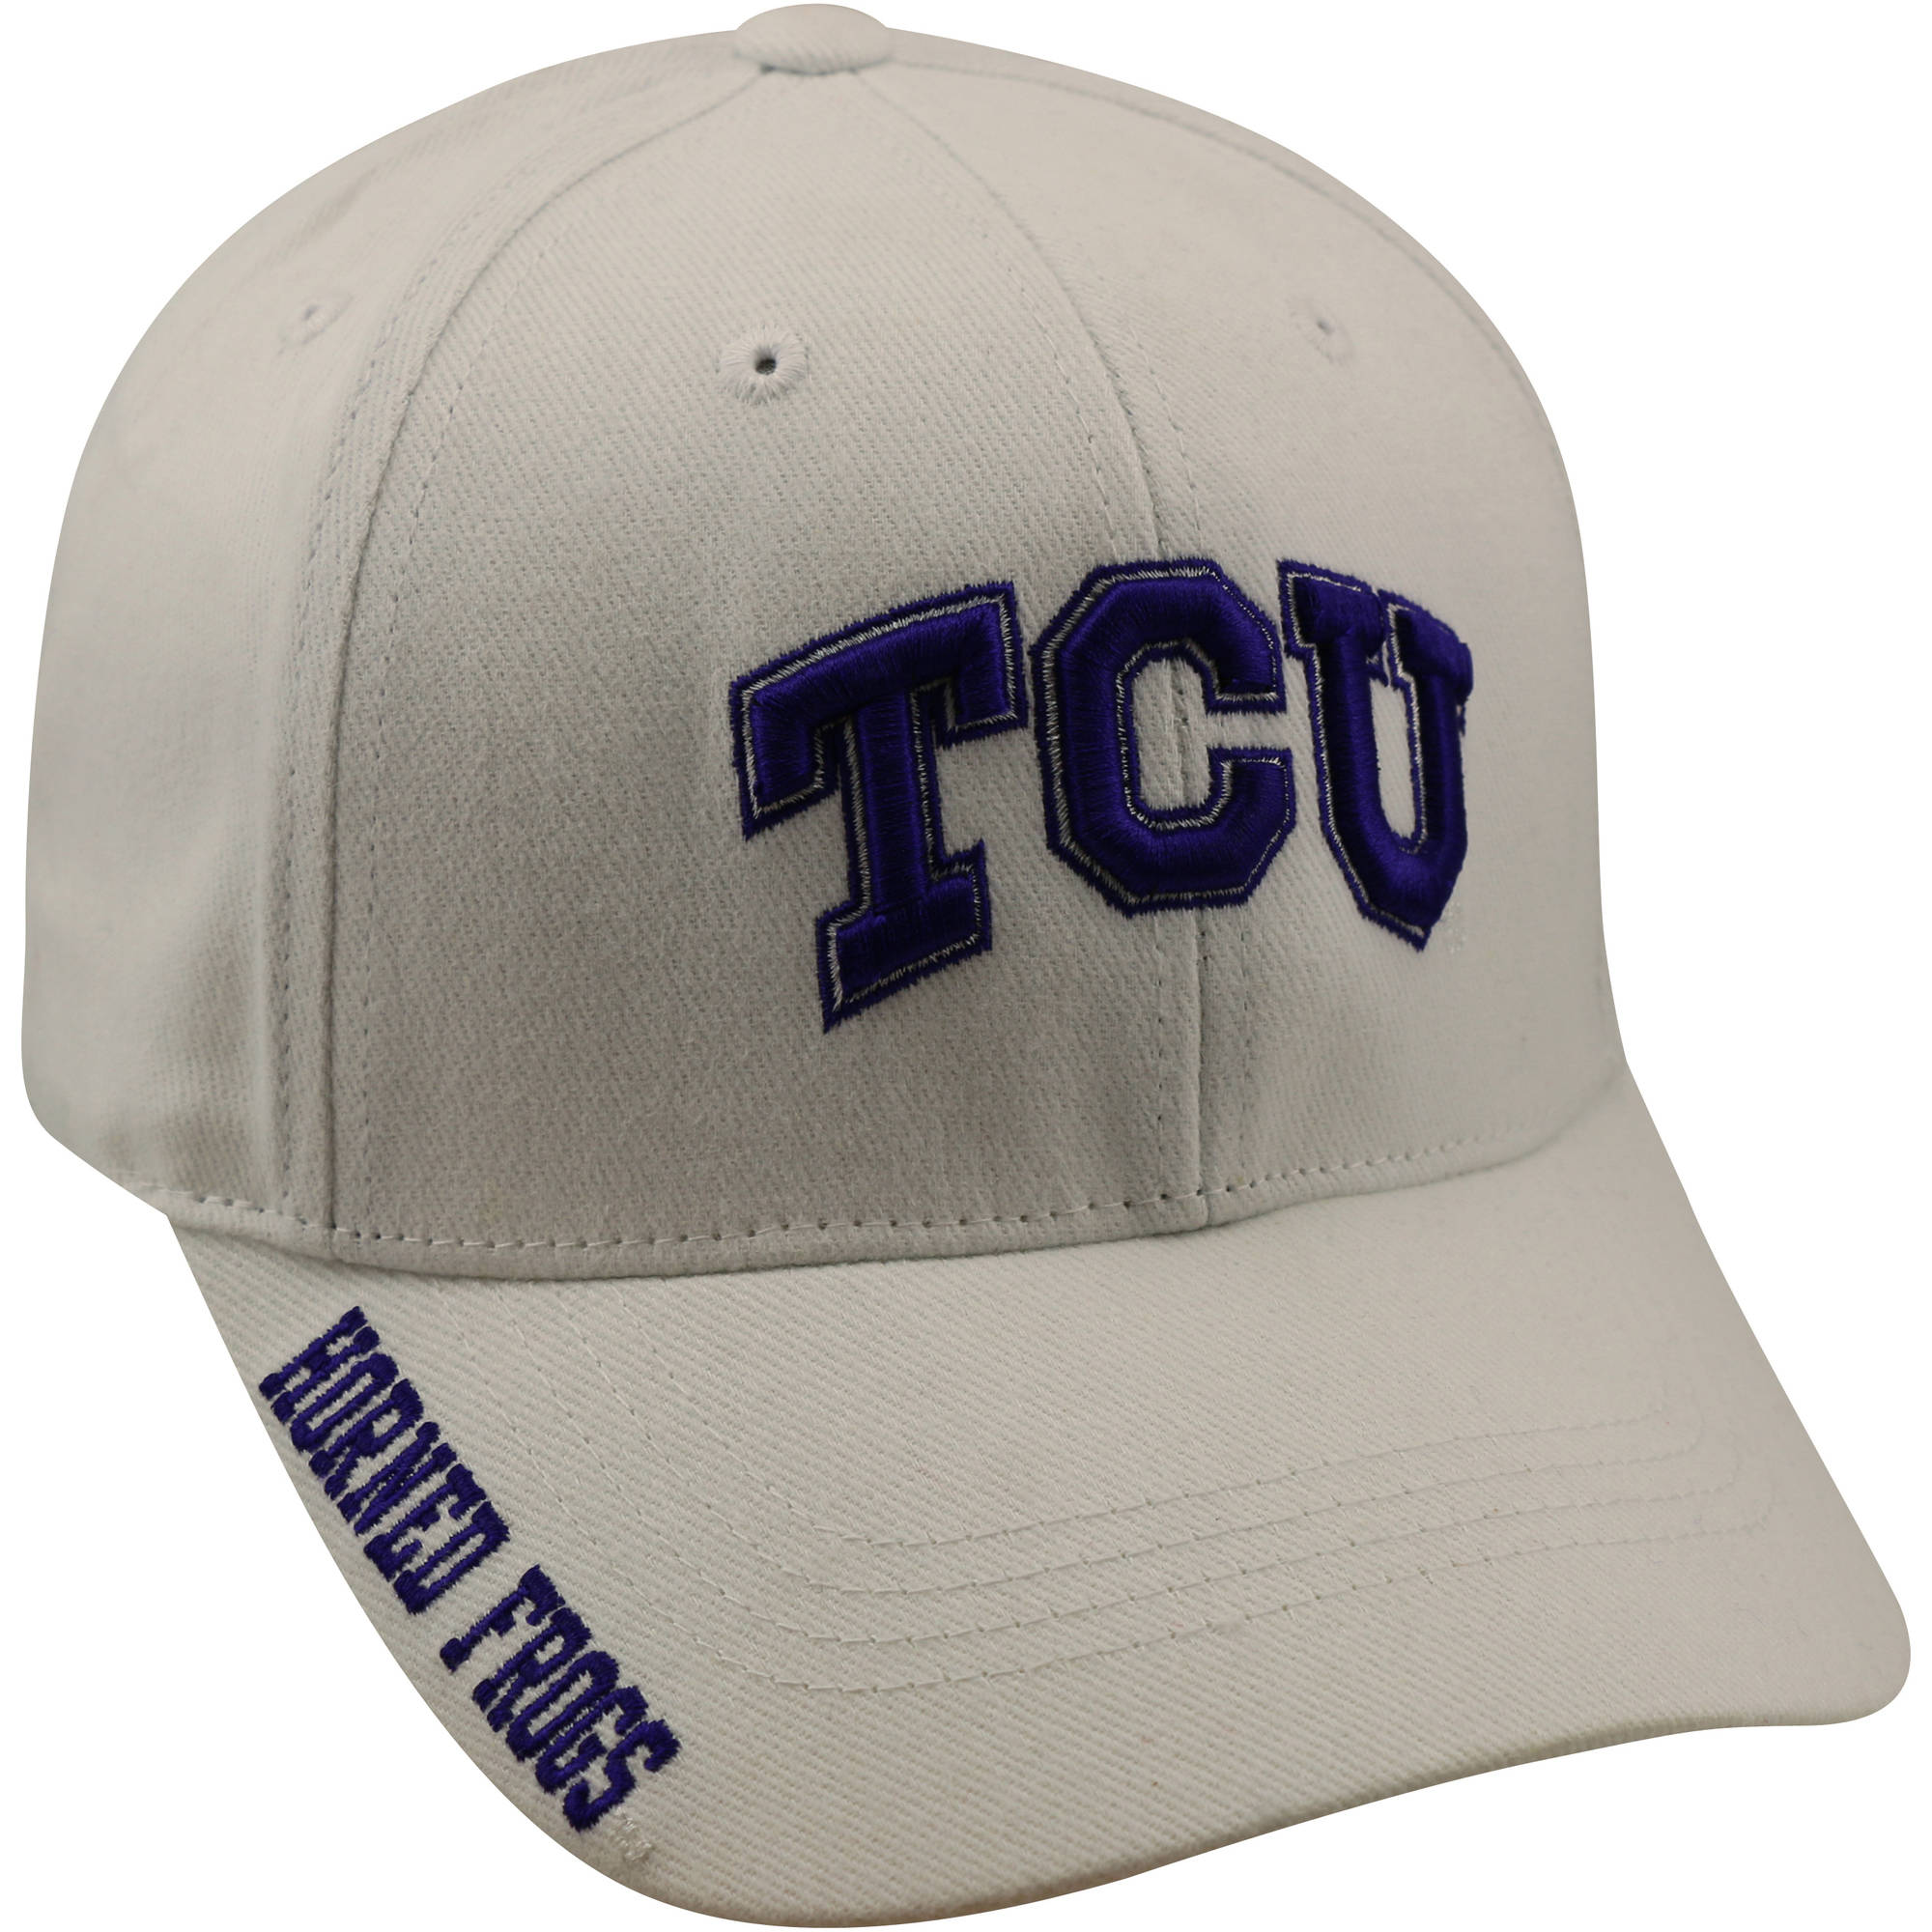 Black CA Accessories TCU Horned Frogs Sport Sunglasses with Color Tips